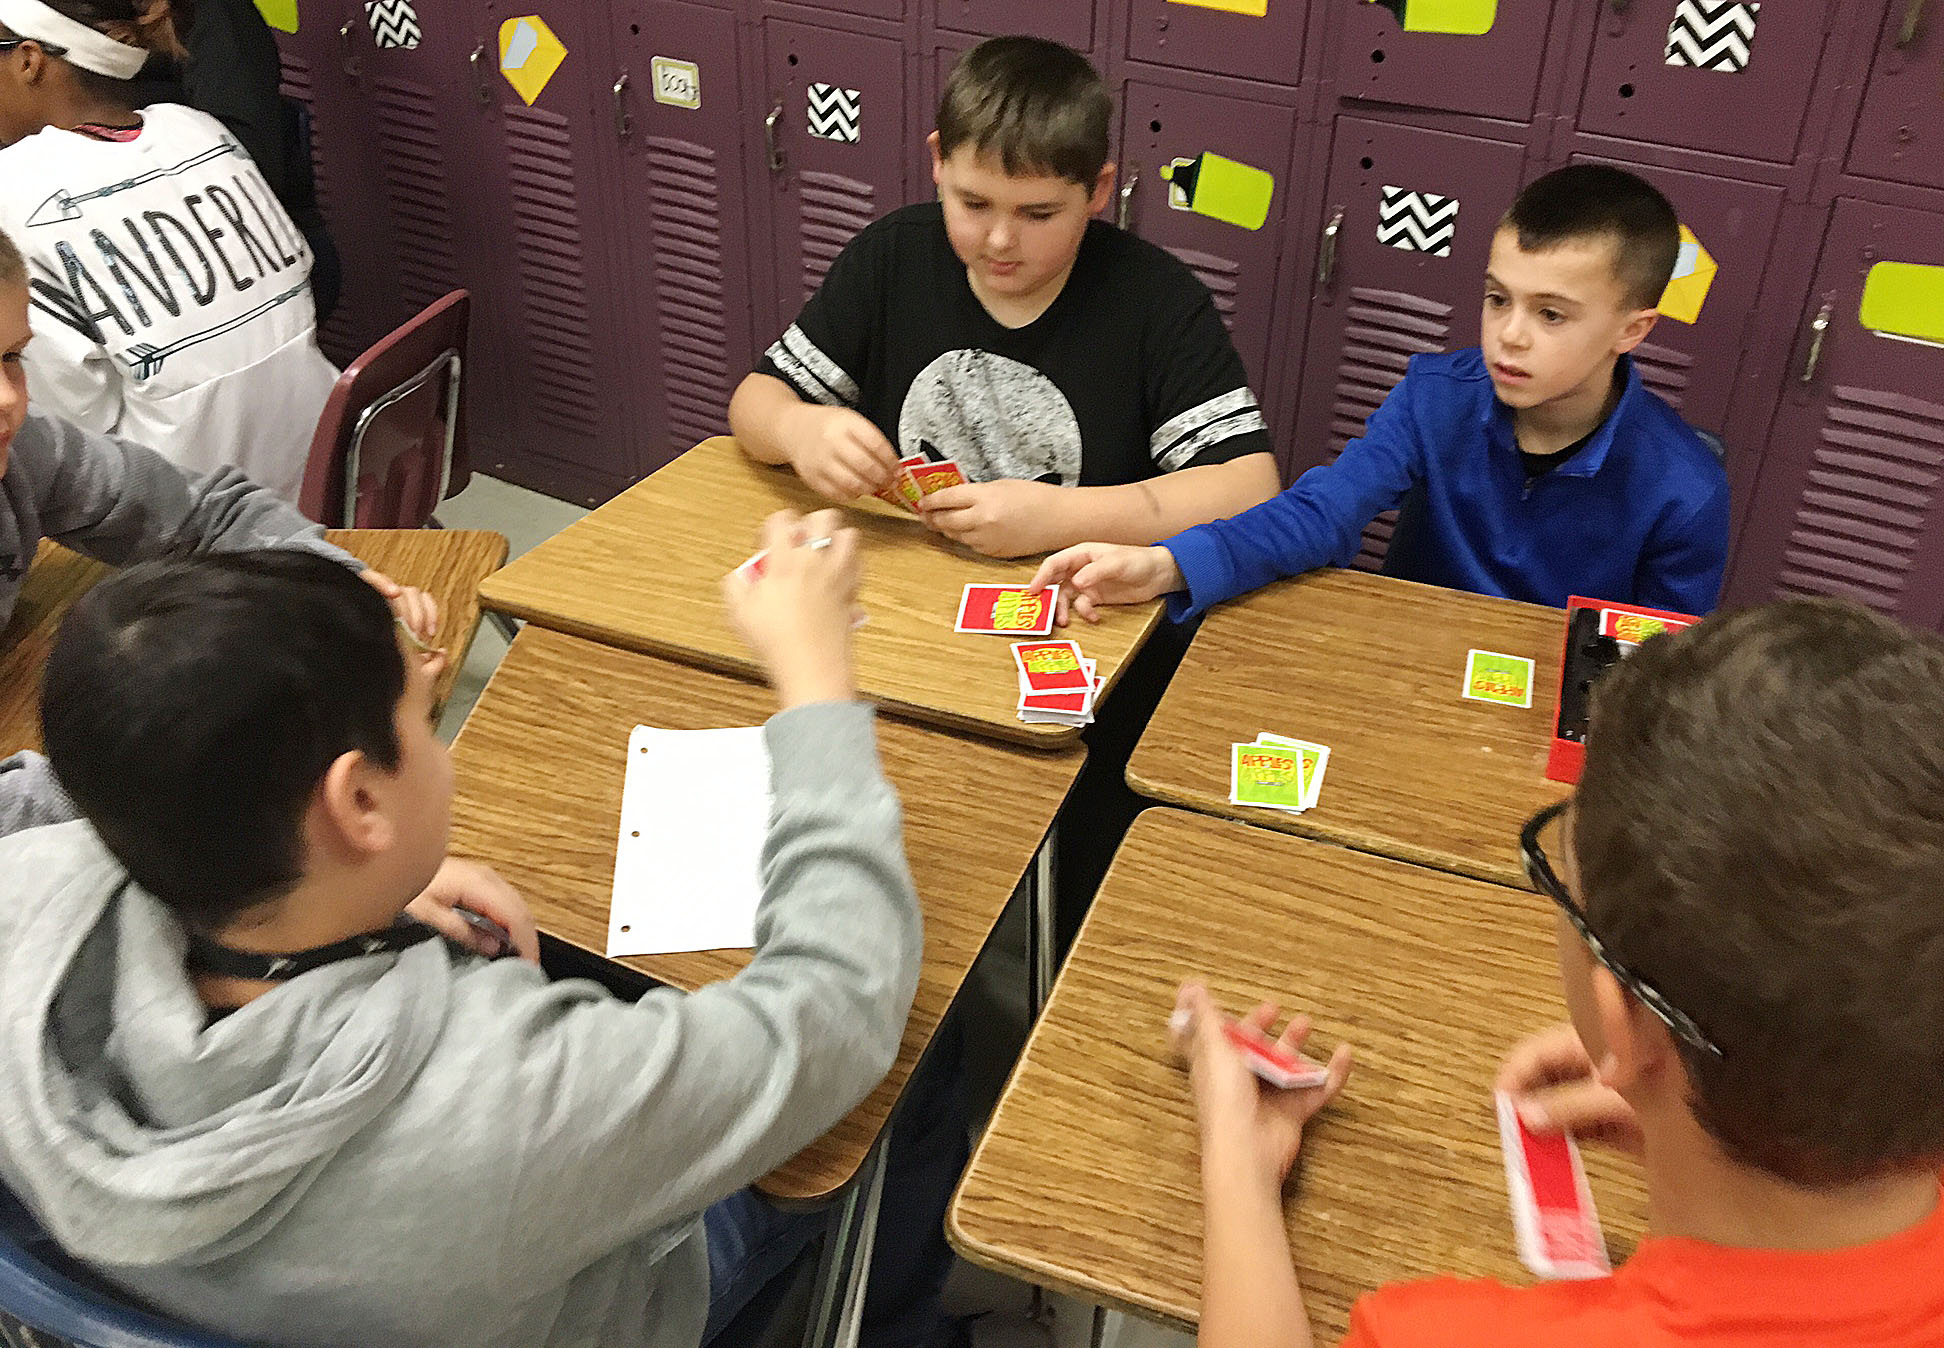 CMS seventh-grader Kaine Terry, at left, and sixth-grader Chase Hord play Apples to Apples with their classmates.